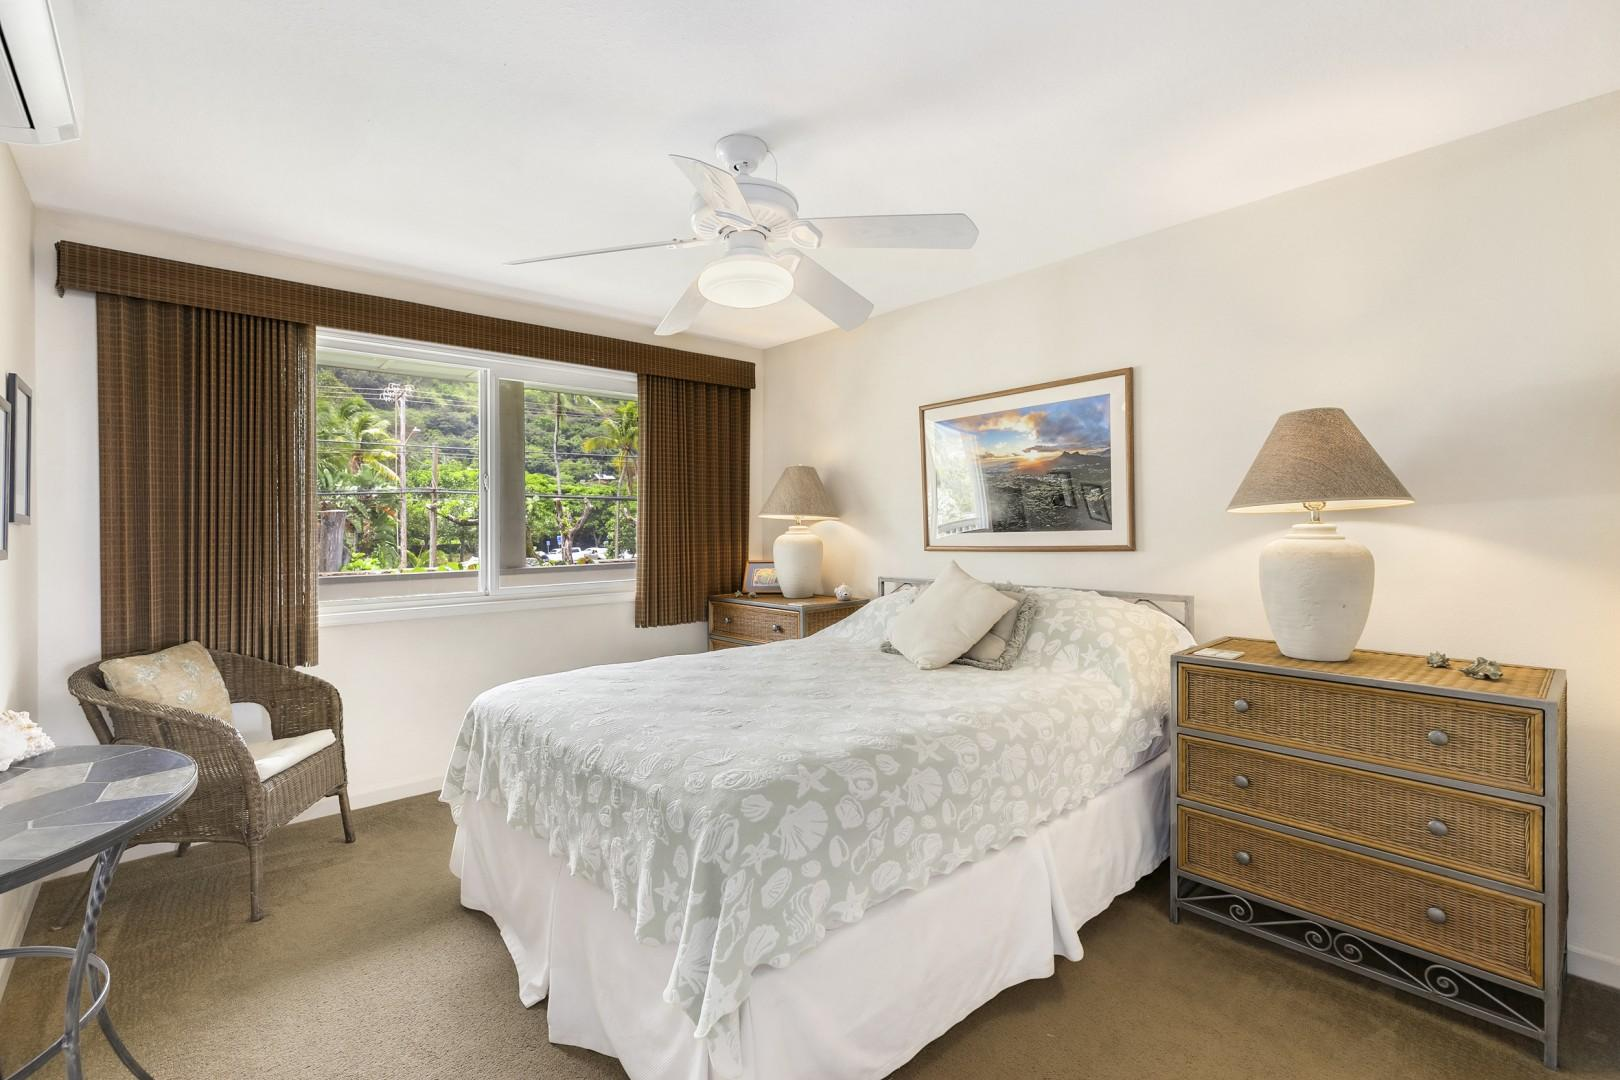 Guest bedroom with queen bed, ceiling fan, split AC, dresser, and closet.